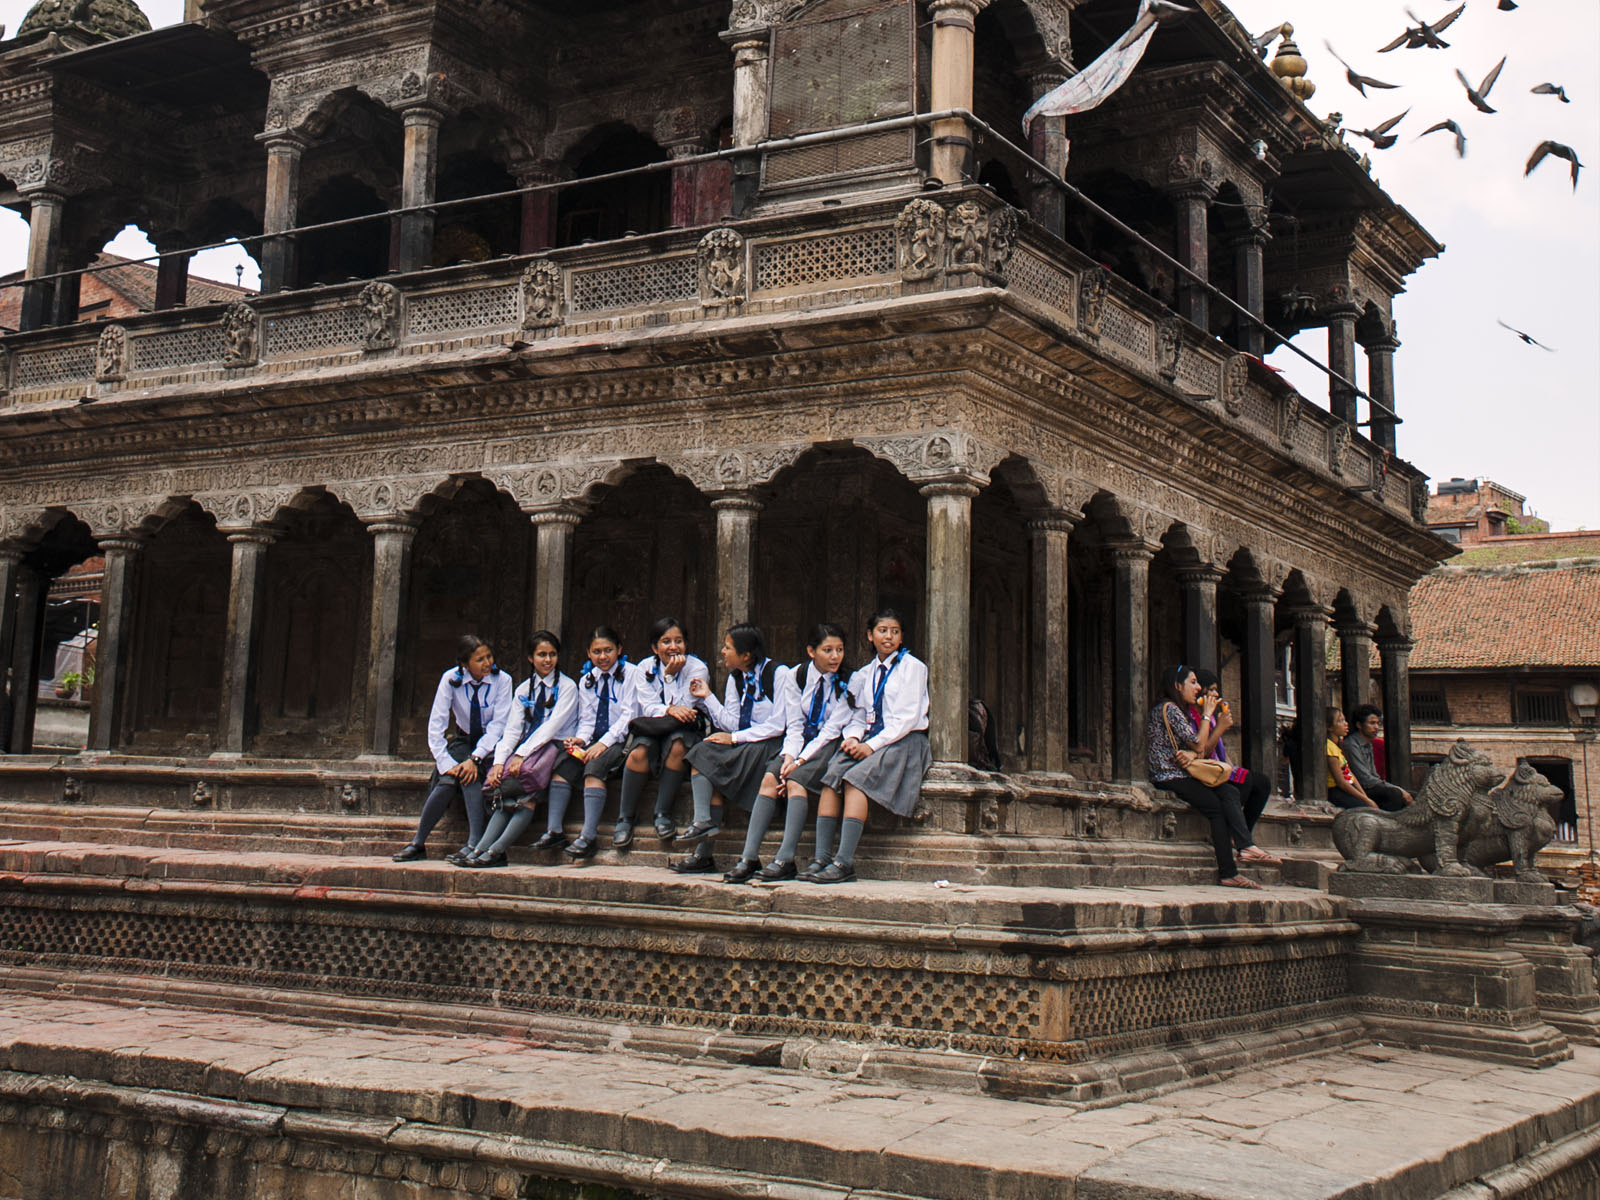 Schoolgirls take a break on one of the many temples in Durbar Square.